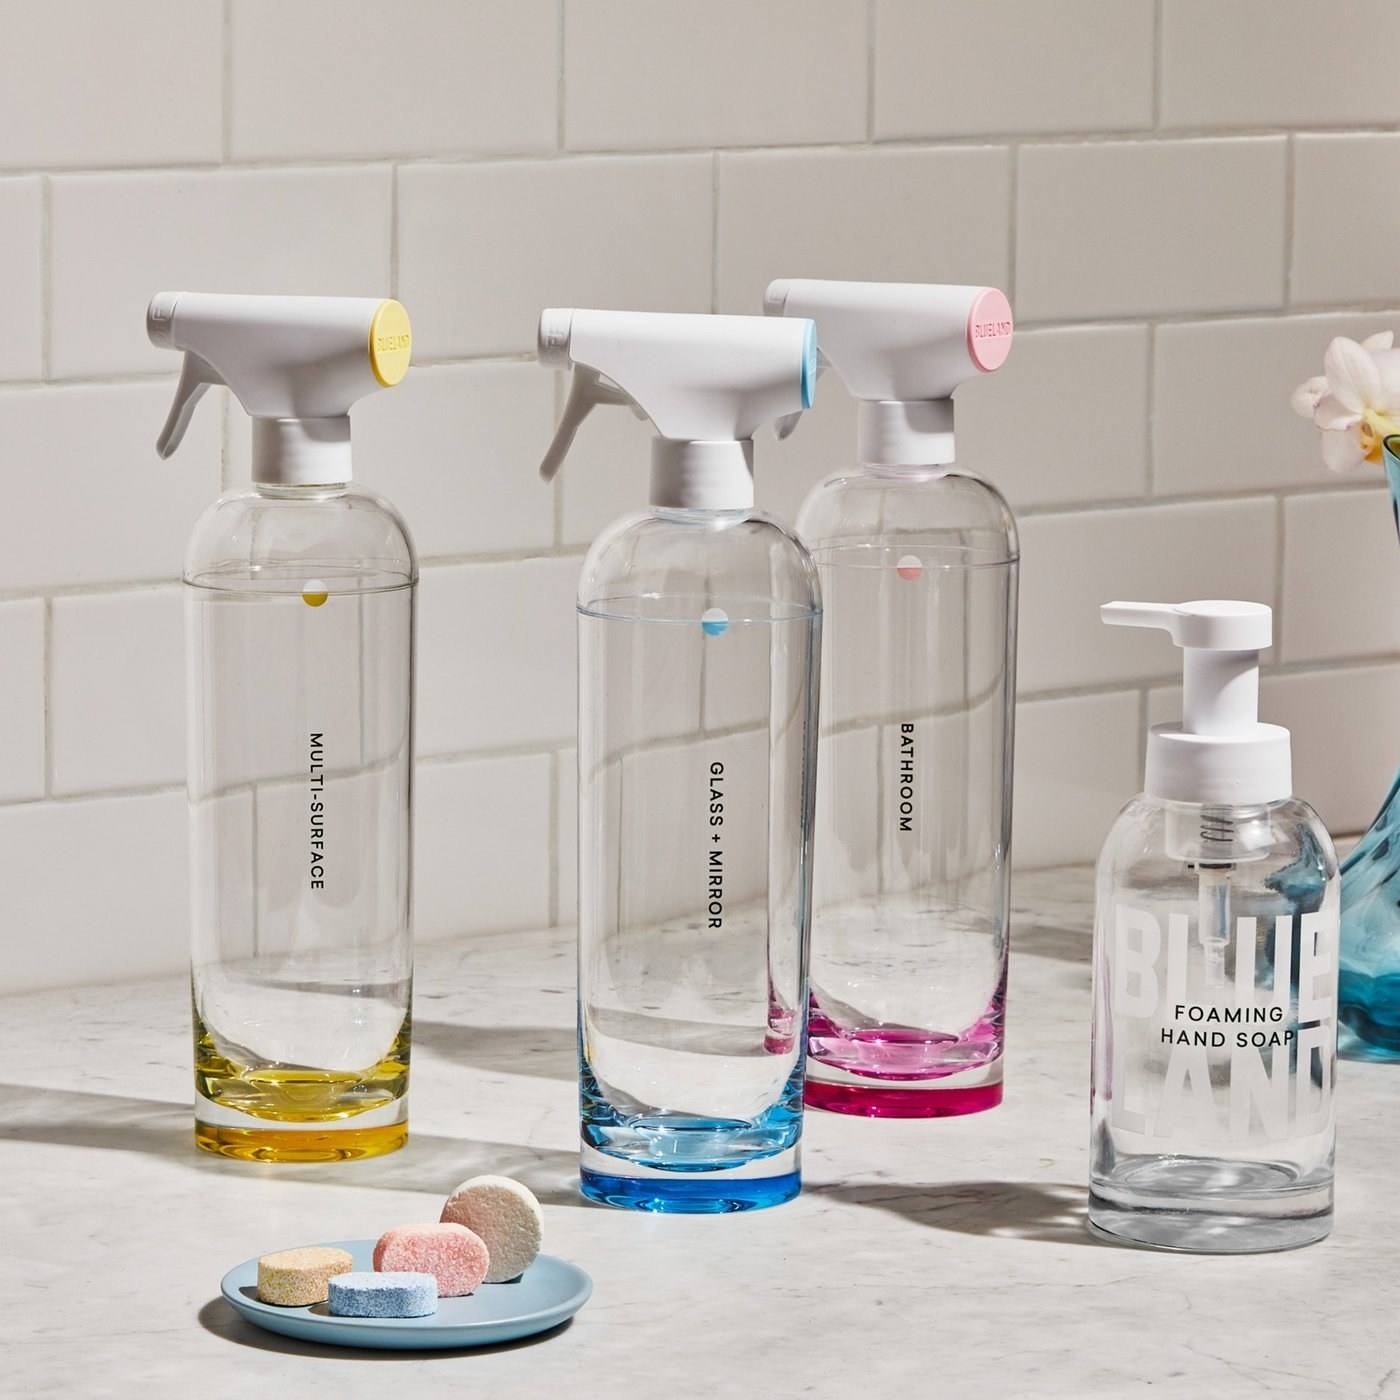 The Clean Essentials kit's cute spray bottles, tablets, and hand soap pump